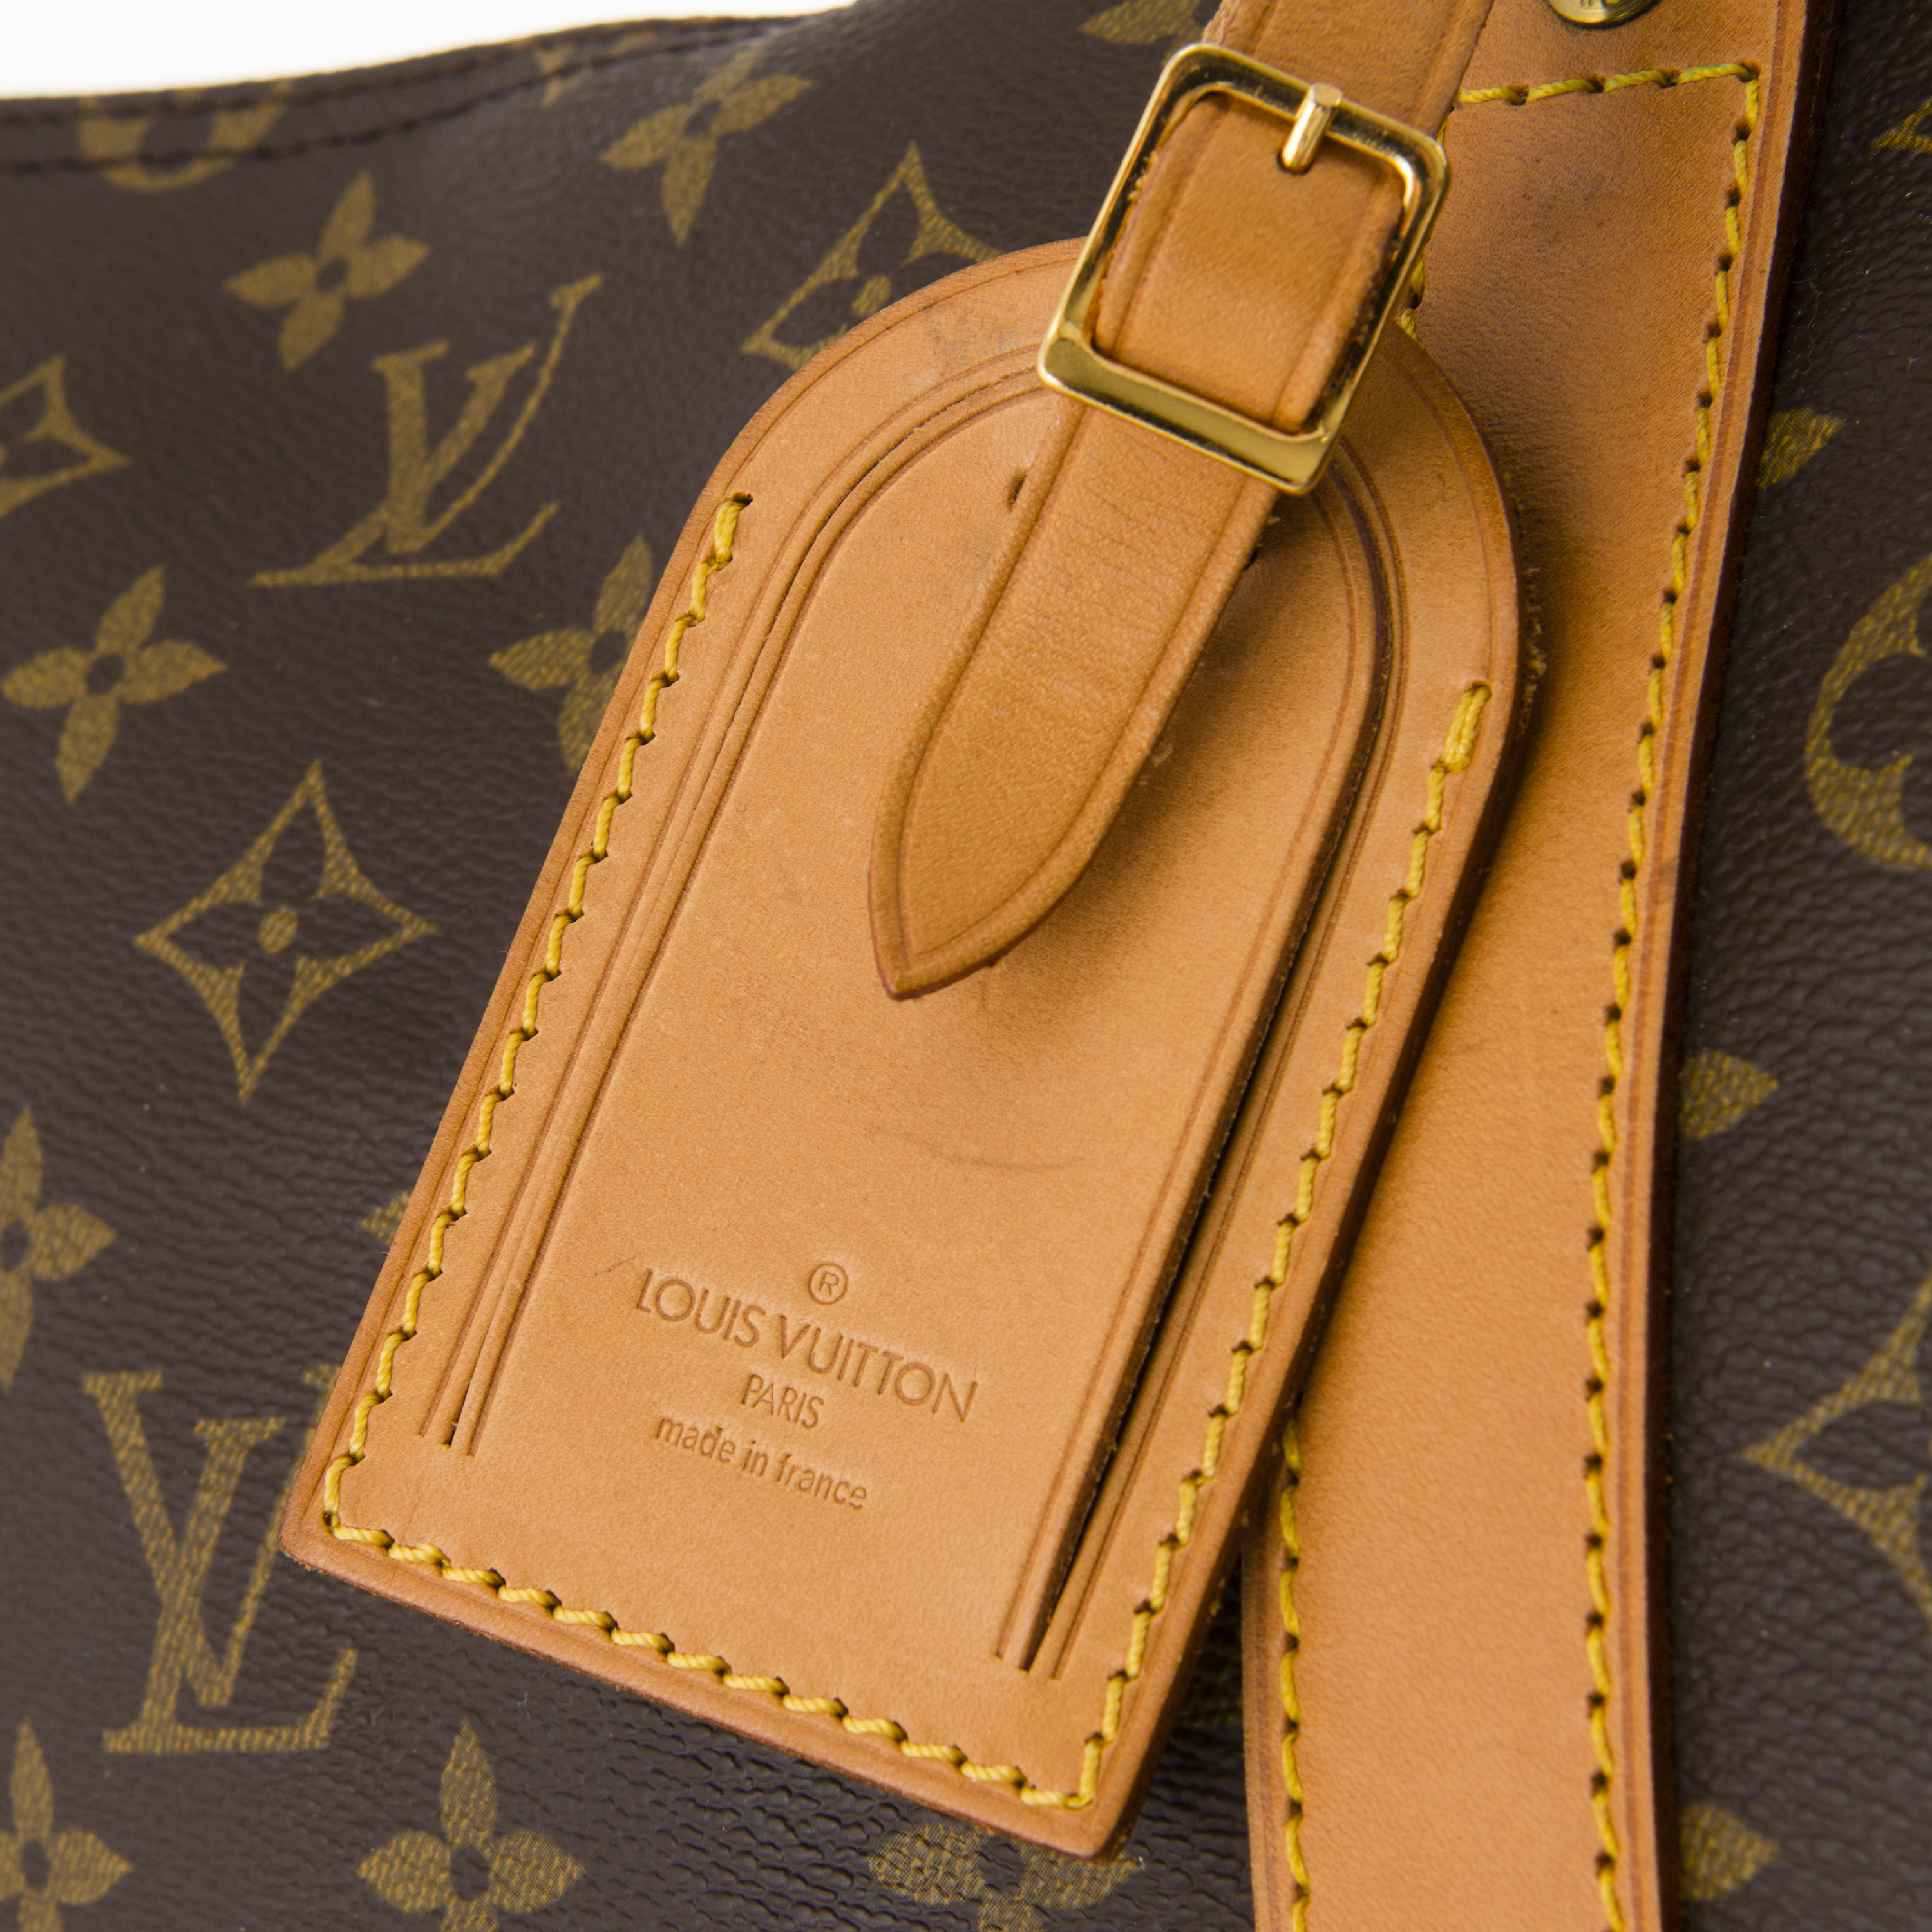 Images For Images For Louis Vuitton Made In France >> Louis Vuitton Vintage Monogram Keepall 55 Bag Bukowskis